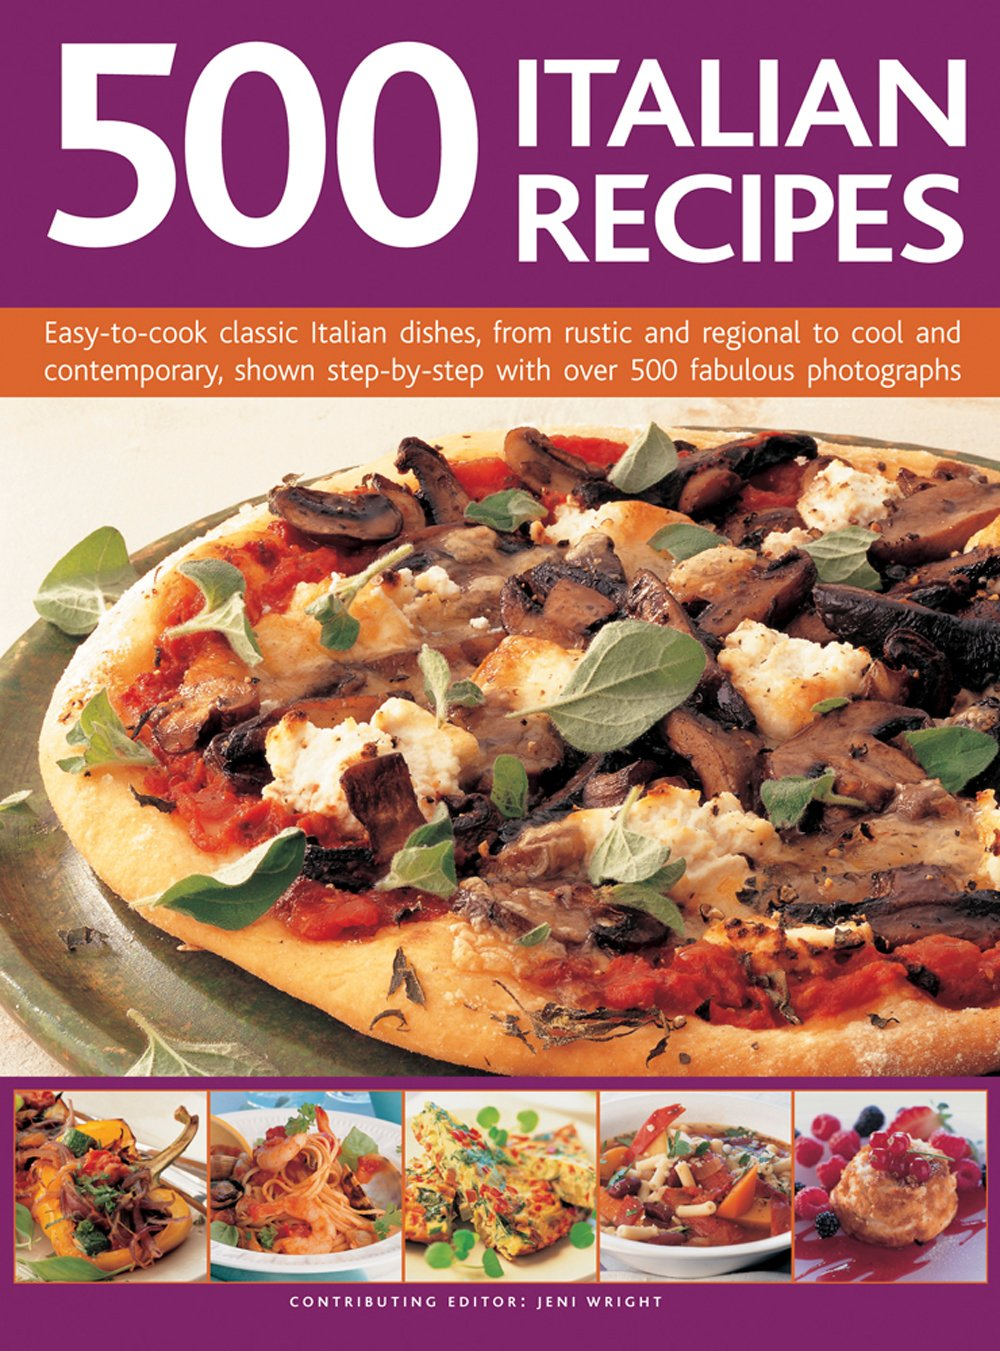 Read Online 500 Italian Recipes: Easy-To-Cook Classic Italian Dishes, From Rustic And Regional To Cool And Contemporary, Shown Step-By-Step With Over 500 Fabulous Photographs pdf